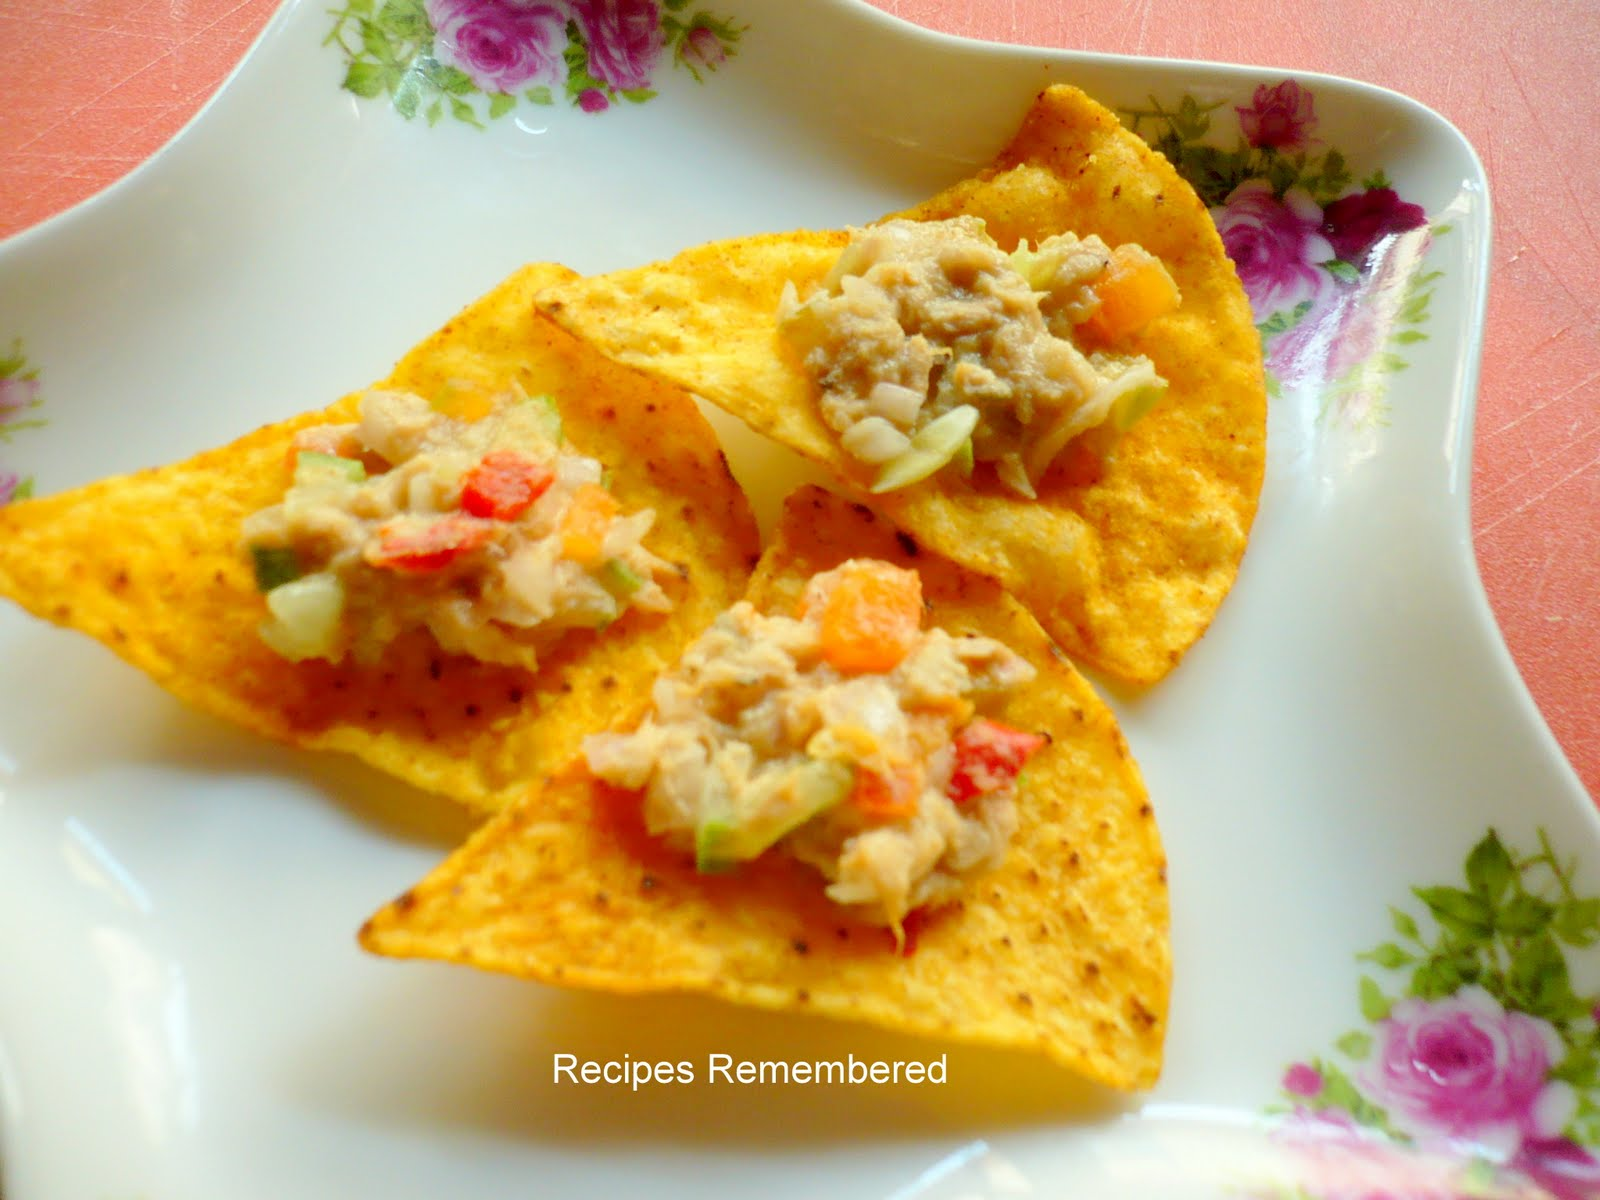 Canapé Sunday But Firzarecipes Recipes Remembered Pringles Canapes With